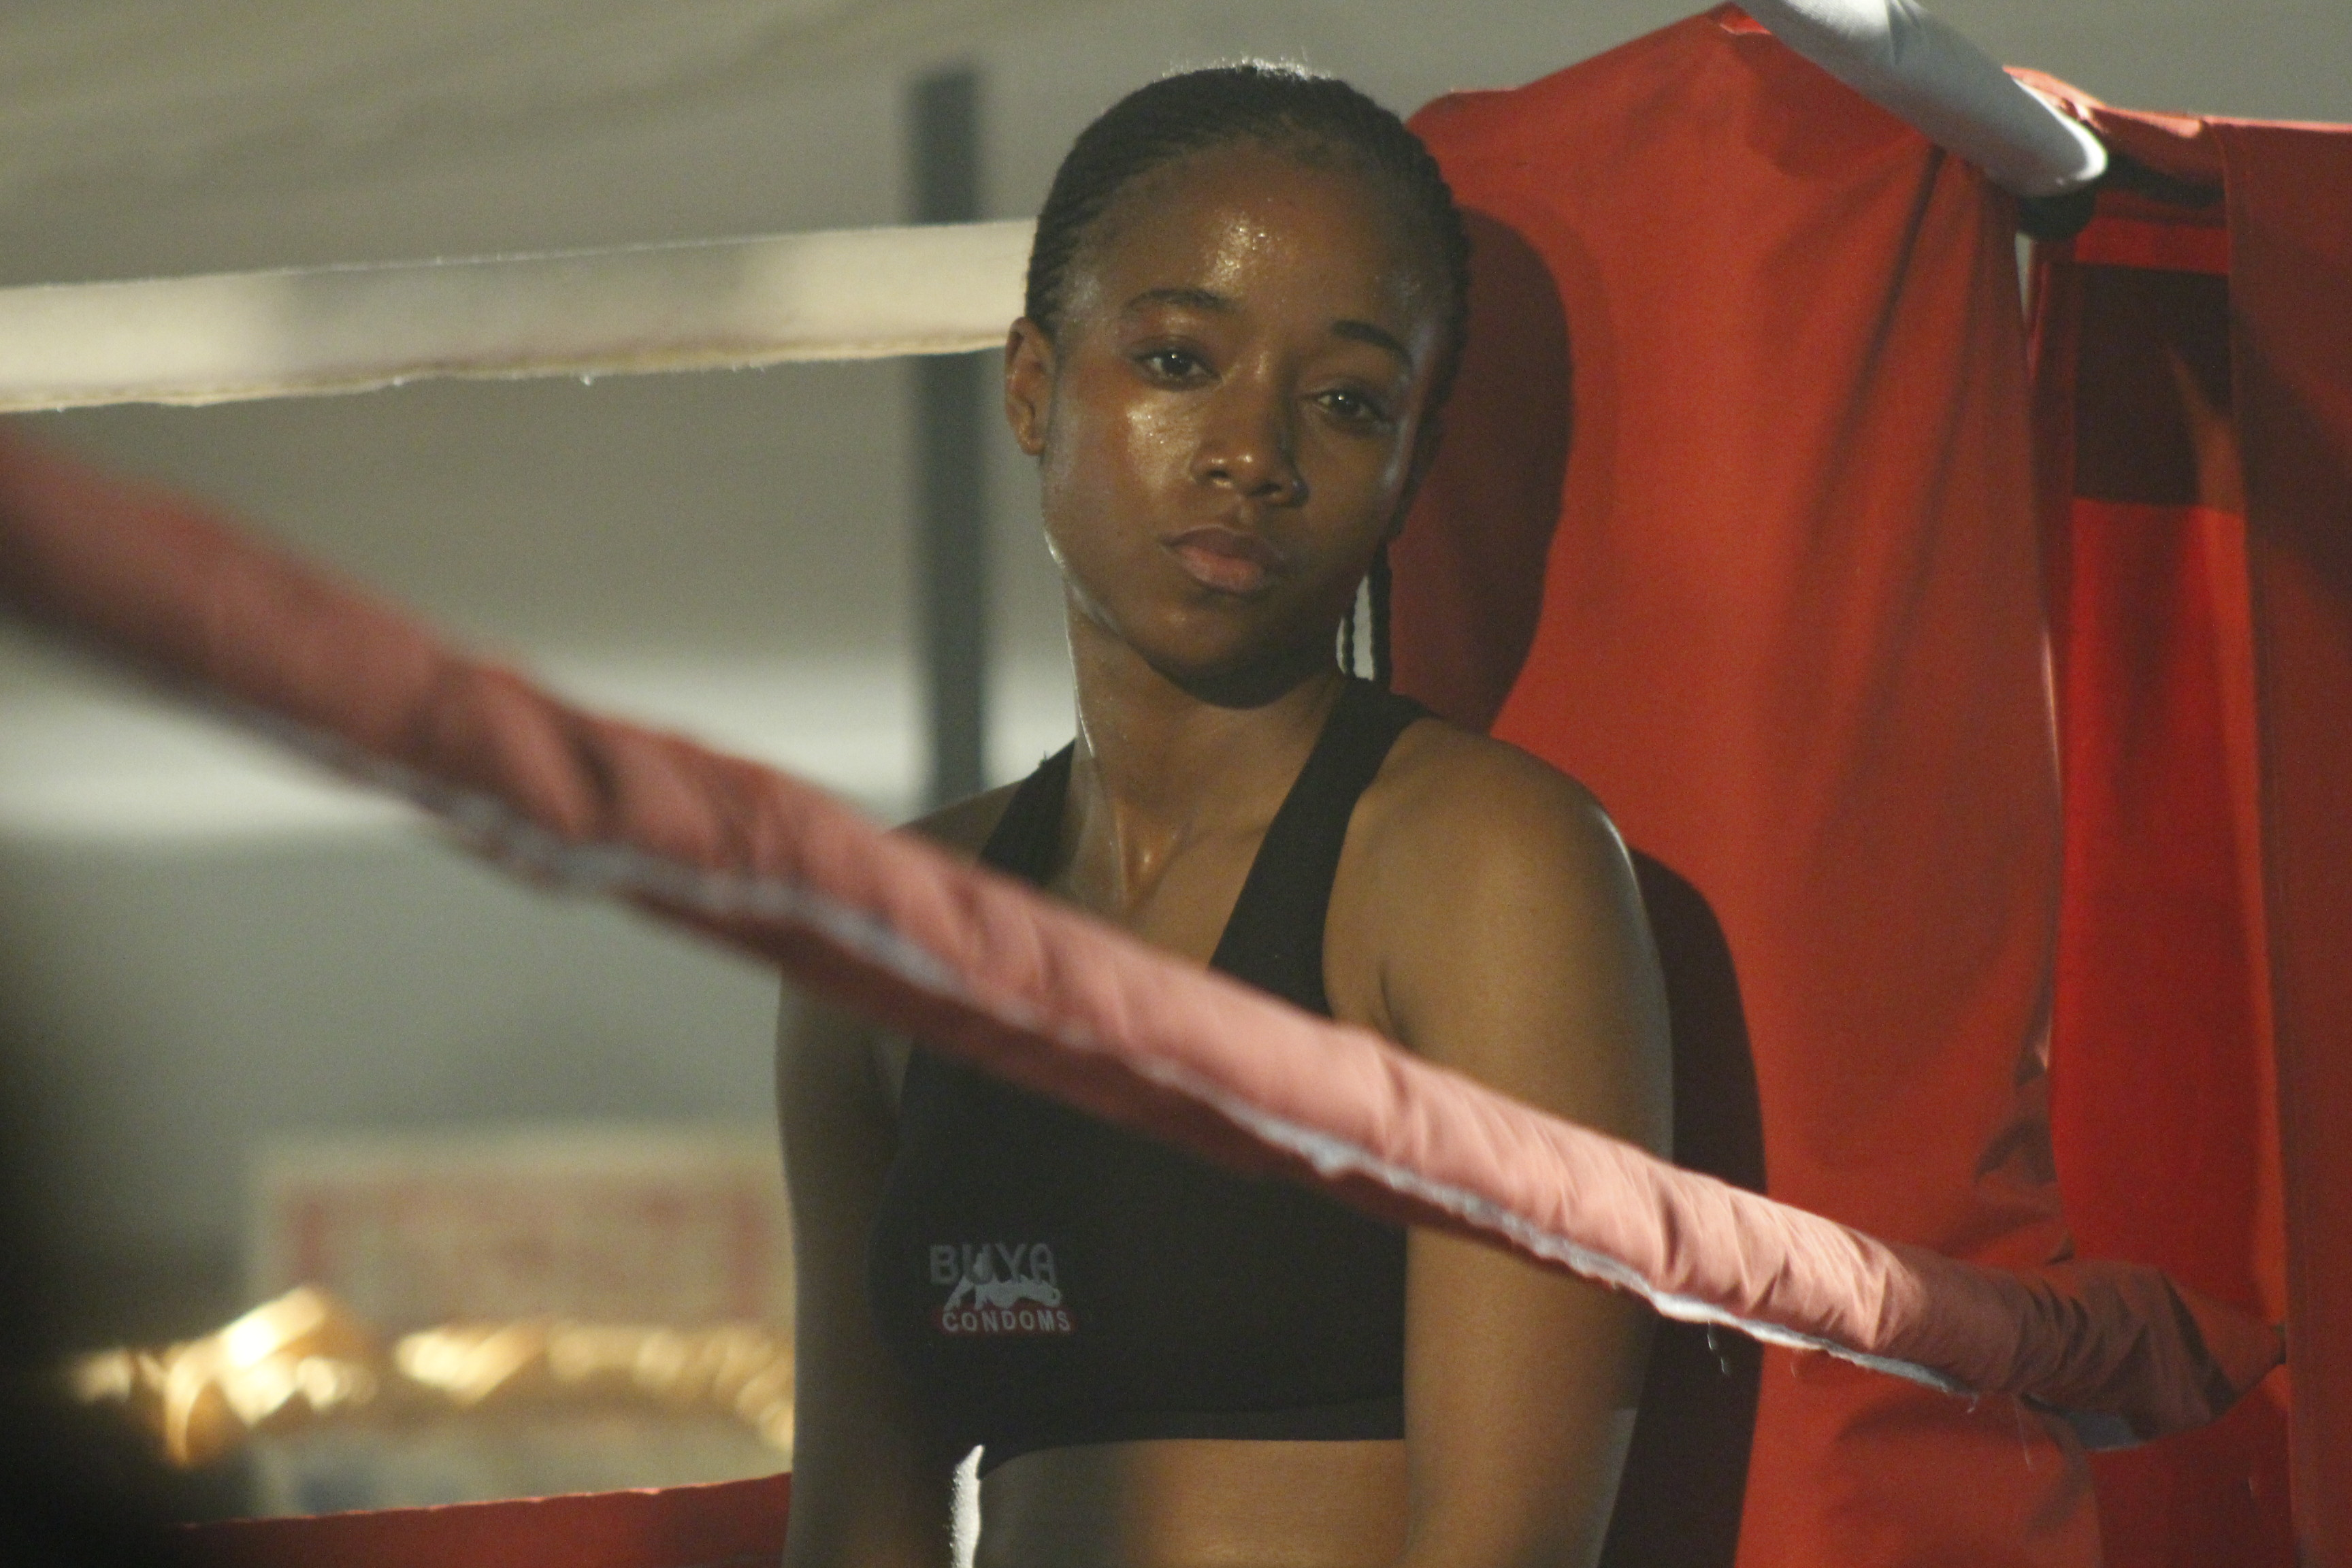 New tv series tells story of woman boxer | GroundUp